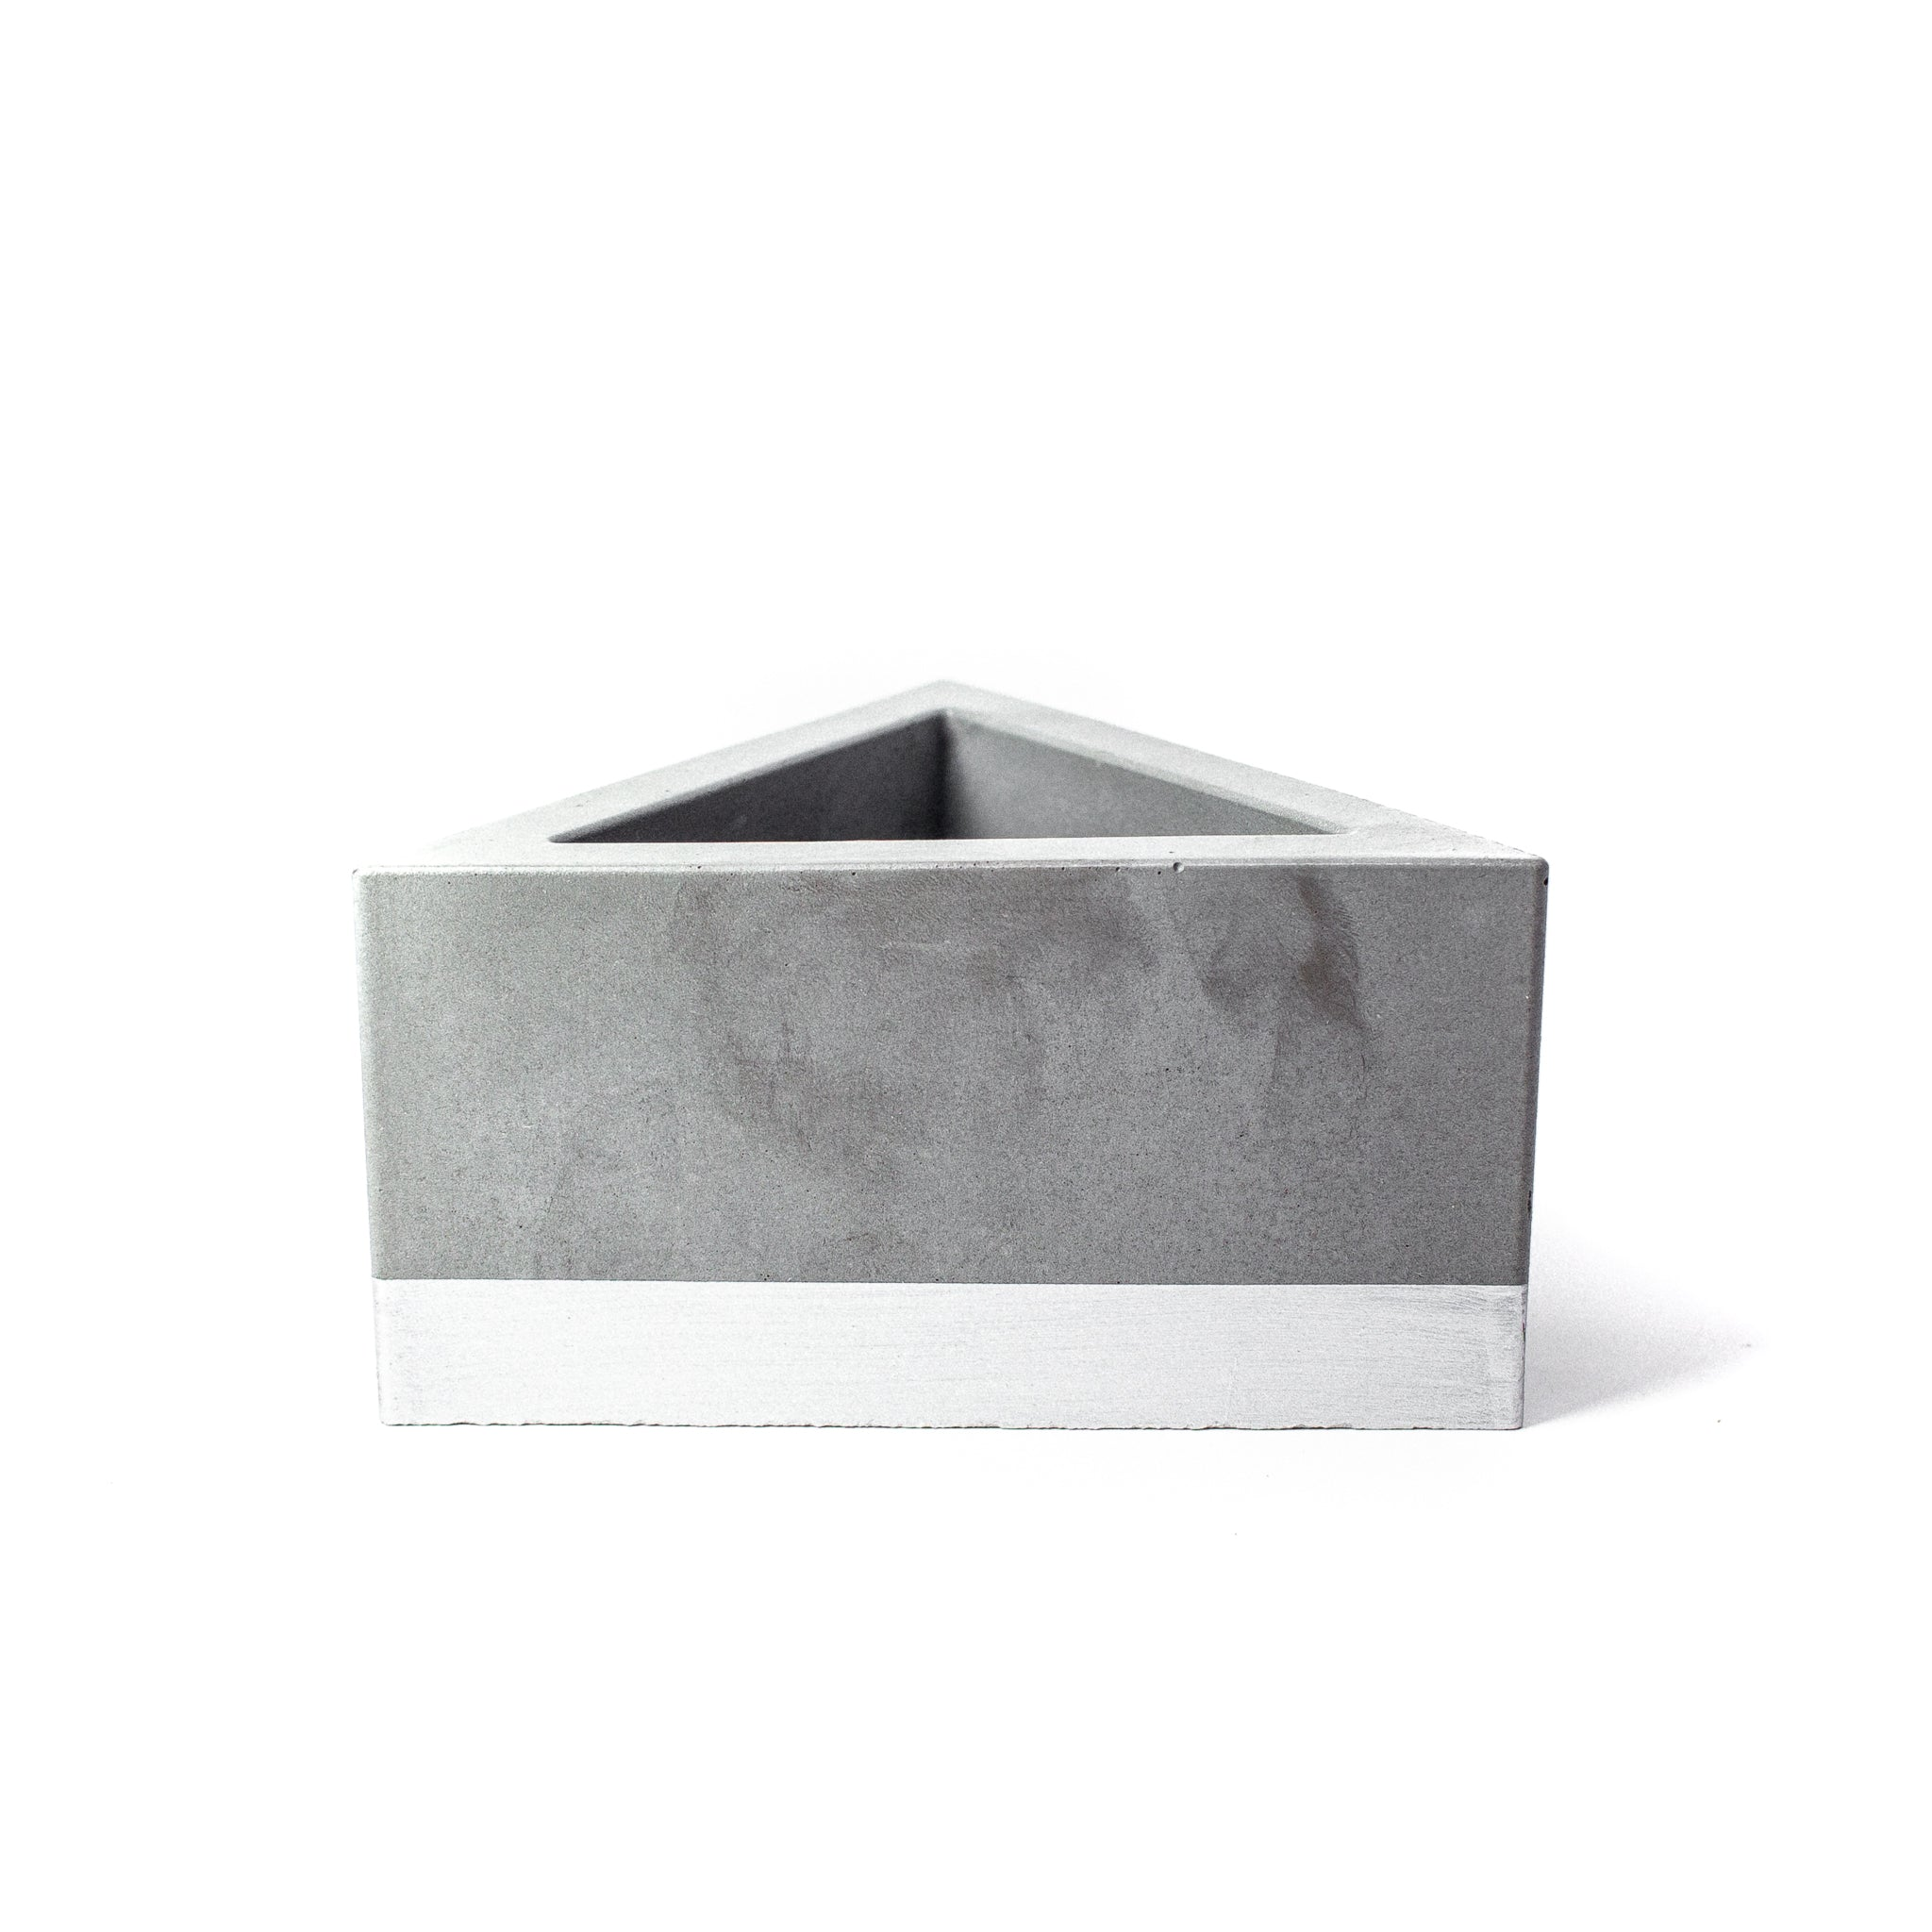 Concrete Triangular Prism Planter: Silver